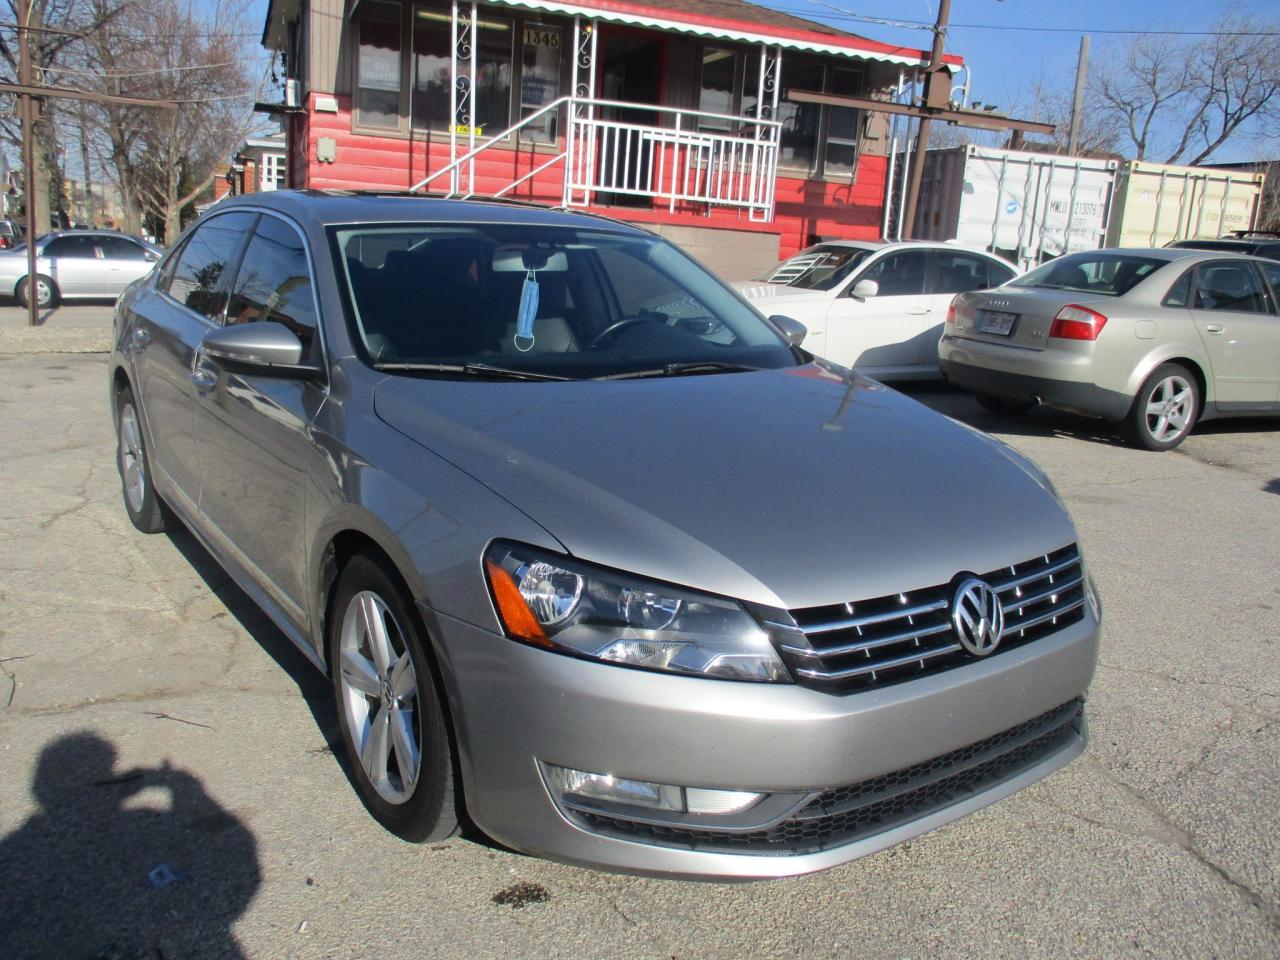 Dsg Passat Used 2012 Volkswagen Passat 2 Tdi Dsg Comfortline For Sale In